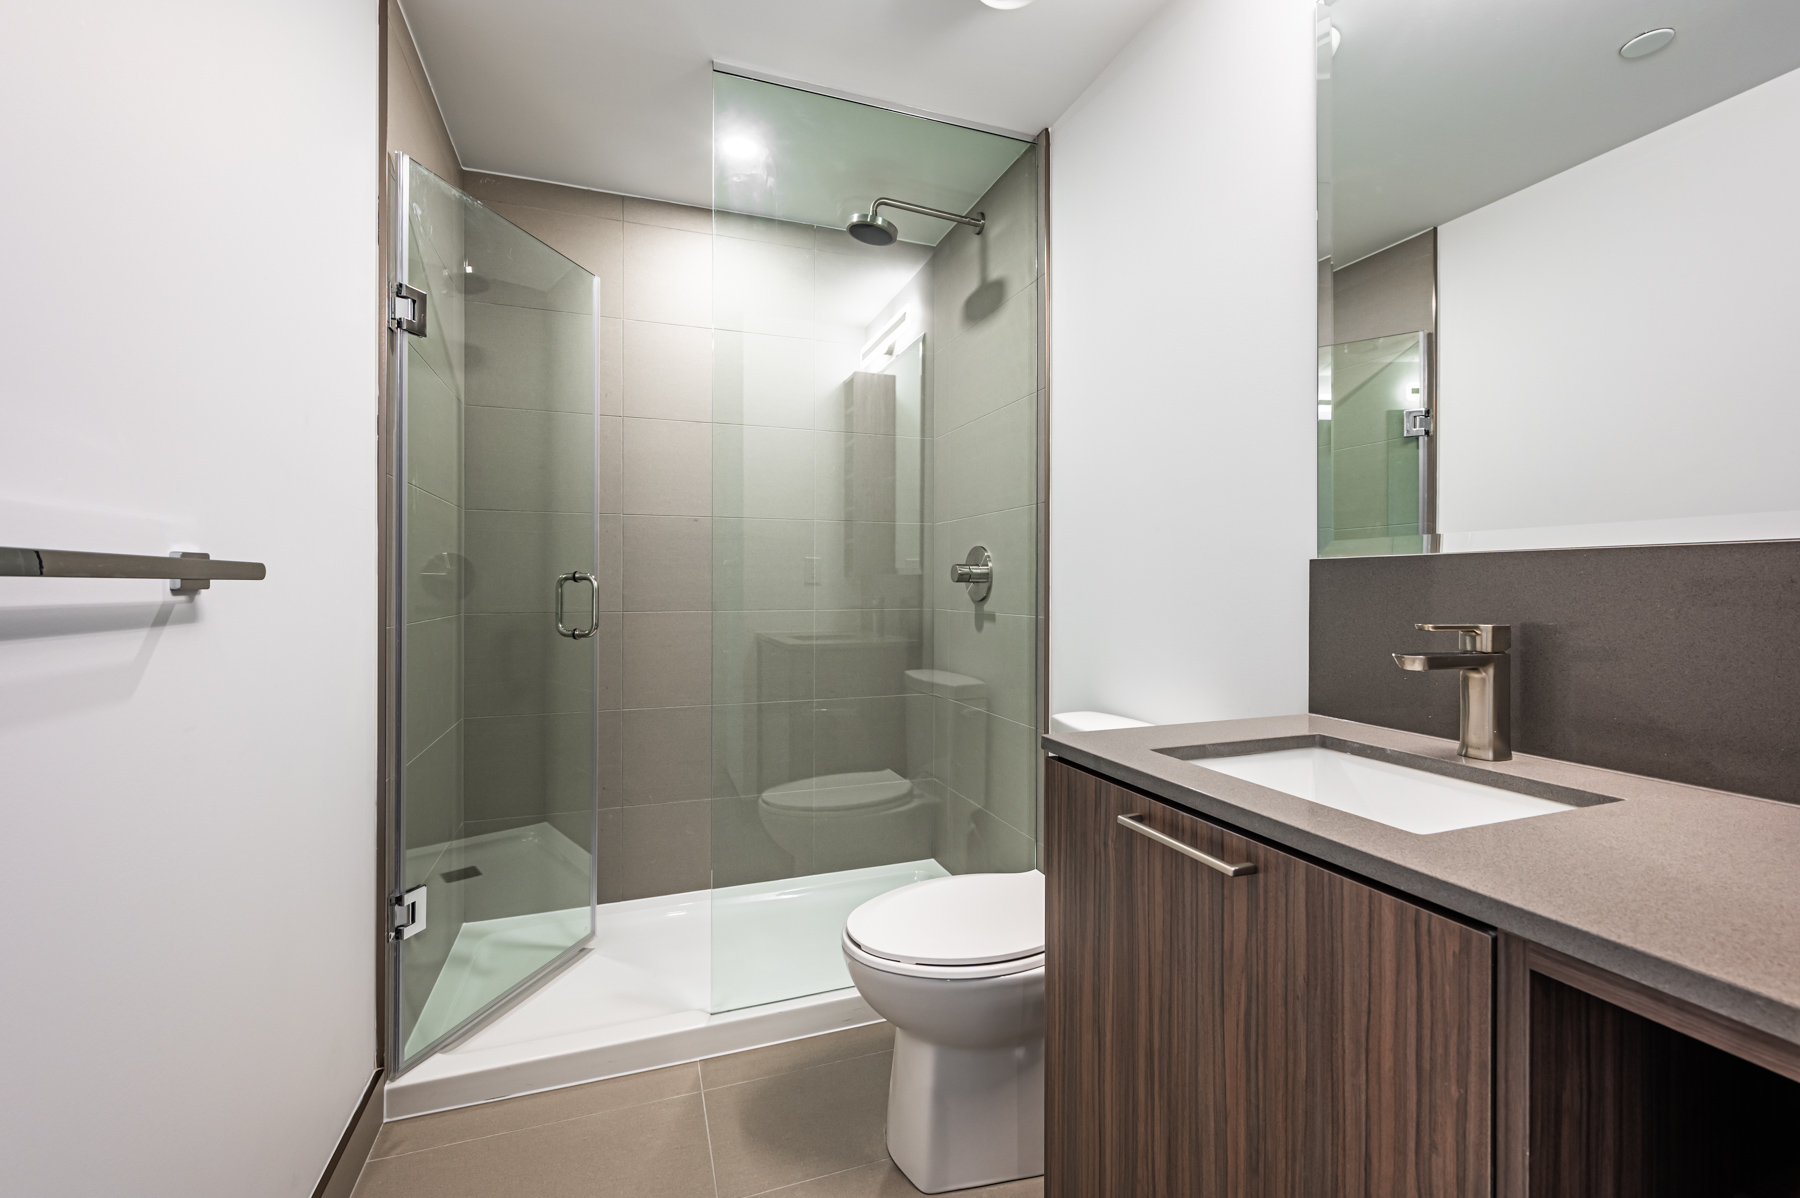 Large walk-in shower with glass doors.